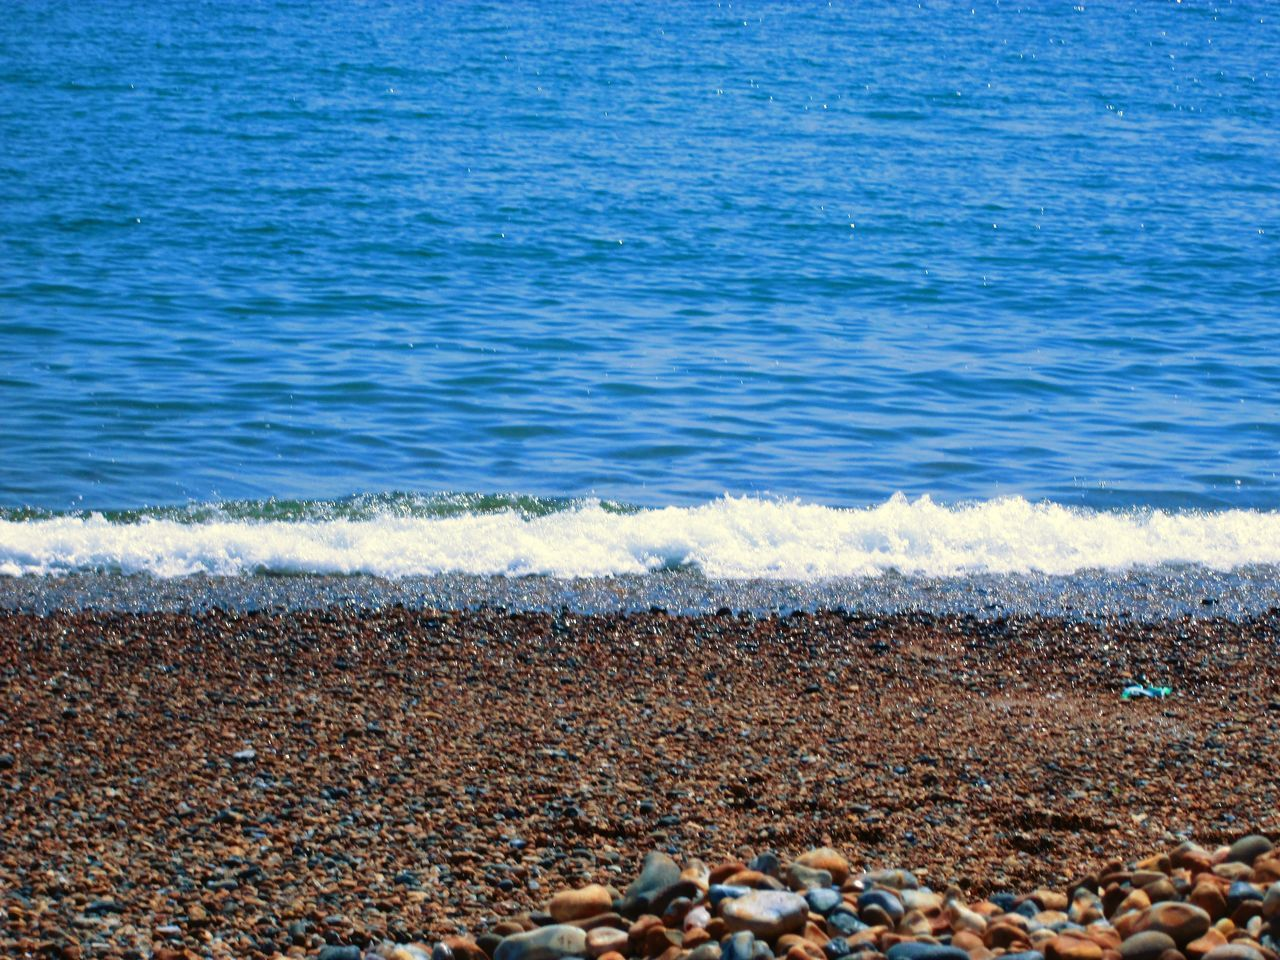 Beach Beauty In Nature Day Nature No People Ocean Outdoors Pebble Pebble Beach Pebbles Pebbles And Stones Pebbles And Water Pebbles Beach Pebbles On A Beach Sea Sunlight Water Wave Waves Waves, Ocean, Nature